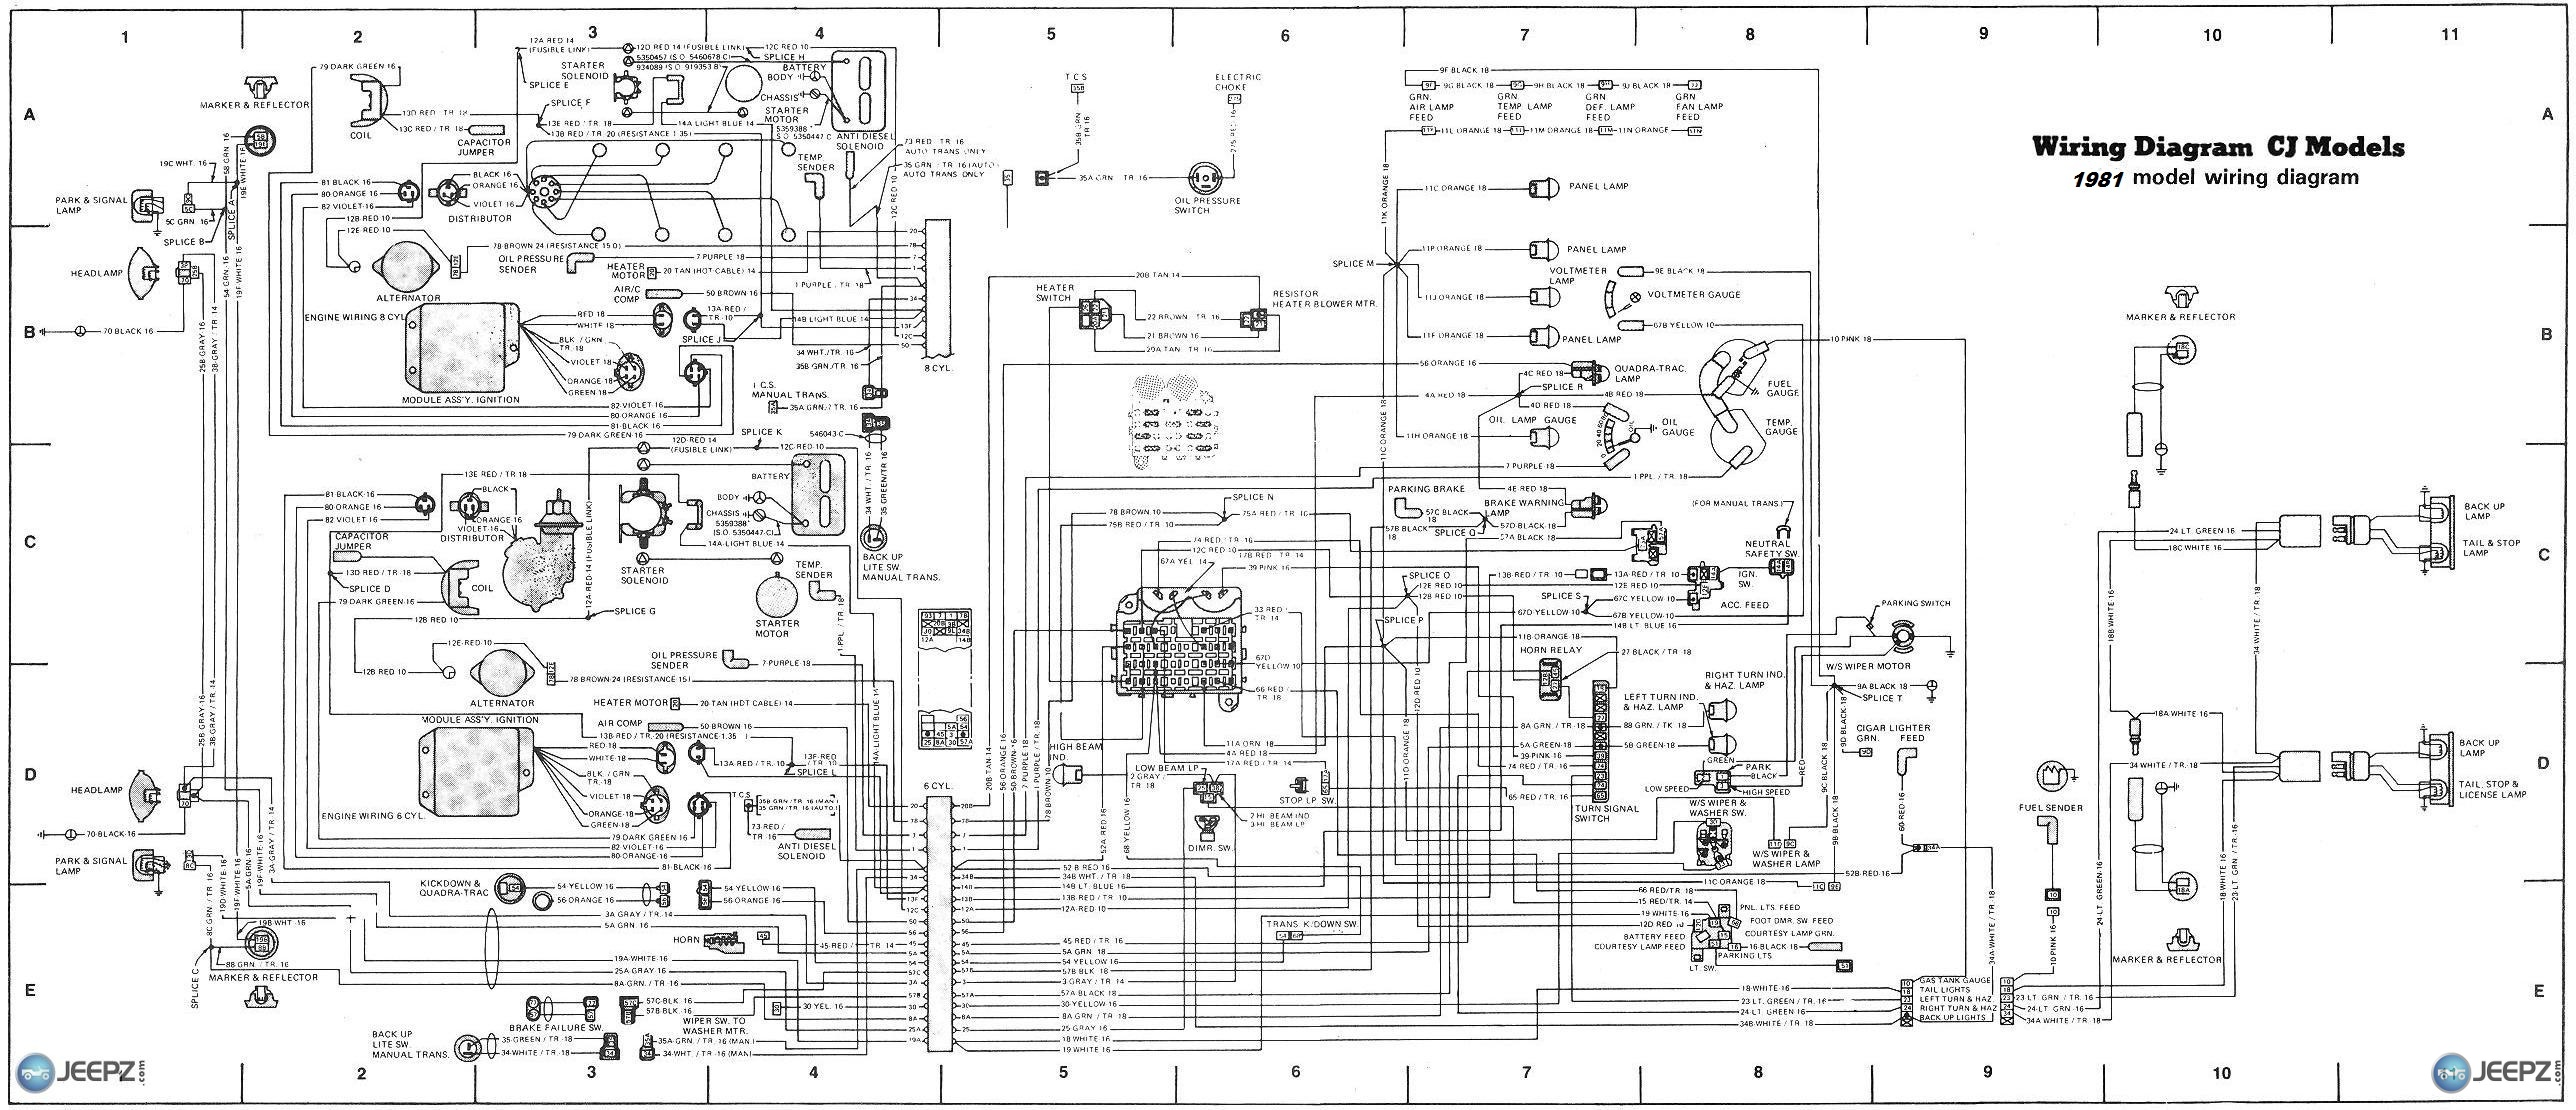 69 jeep cj5 wiring wiring diagram online 1971 Jeep CJ5 Wiring-Diagram jeep cj5 ignition diagram wiring diagram online 1969 jeep cj5 parts 69 jeep cj5 wiring